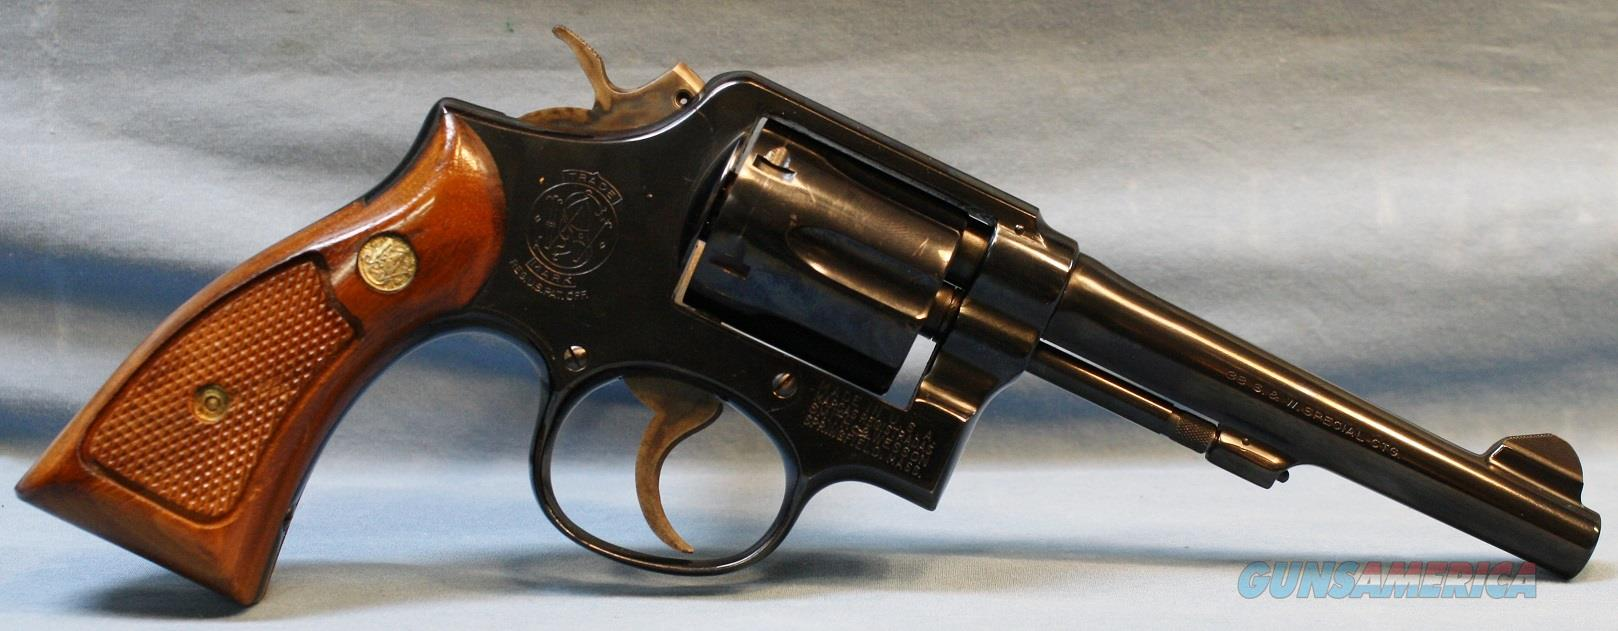 Smith & Wesson model 10-5 Double Action Revolver, made in 1971, 38 special Free Shipping!  Guns > Pistols > Smith & Wesson Revolvers > Model 10